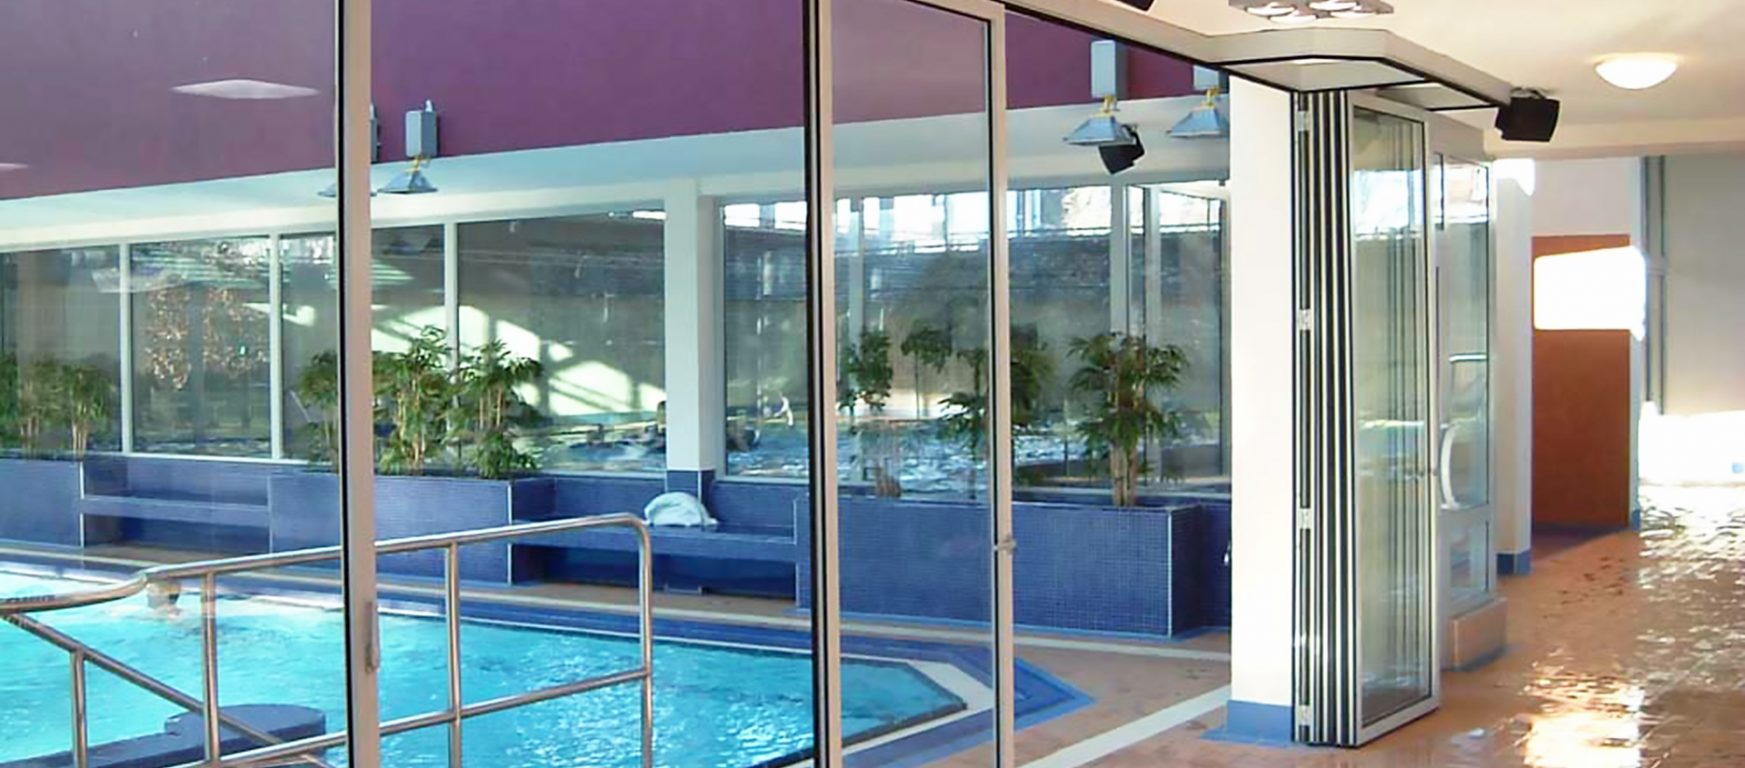 Sunflex SF50 HSW moveable wall